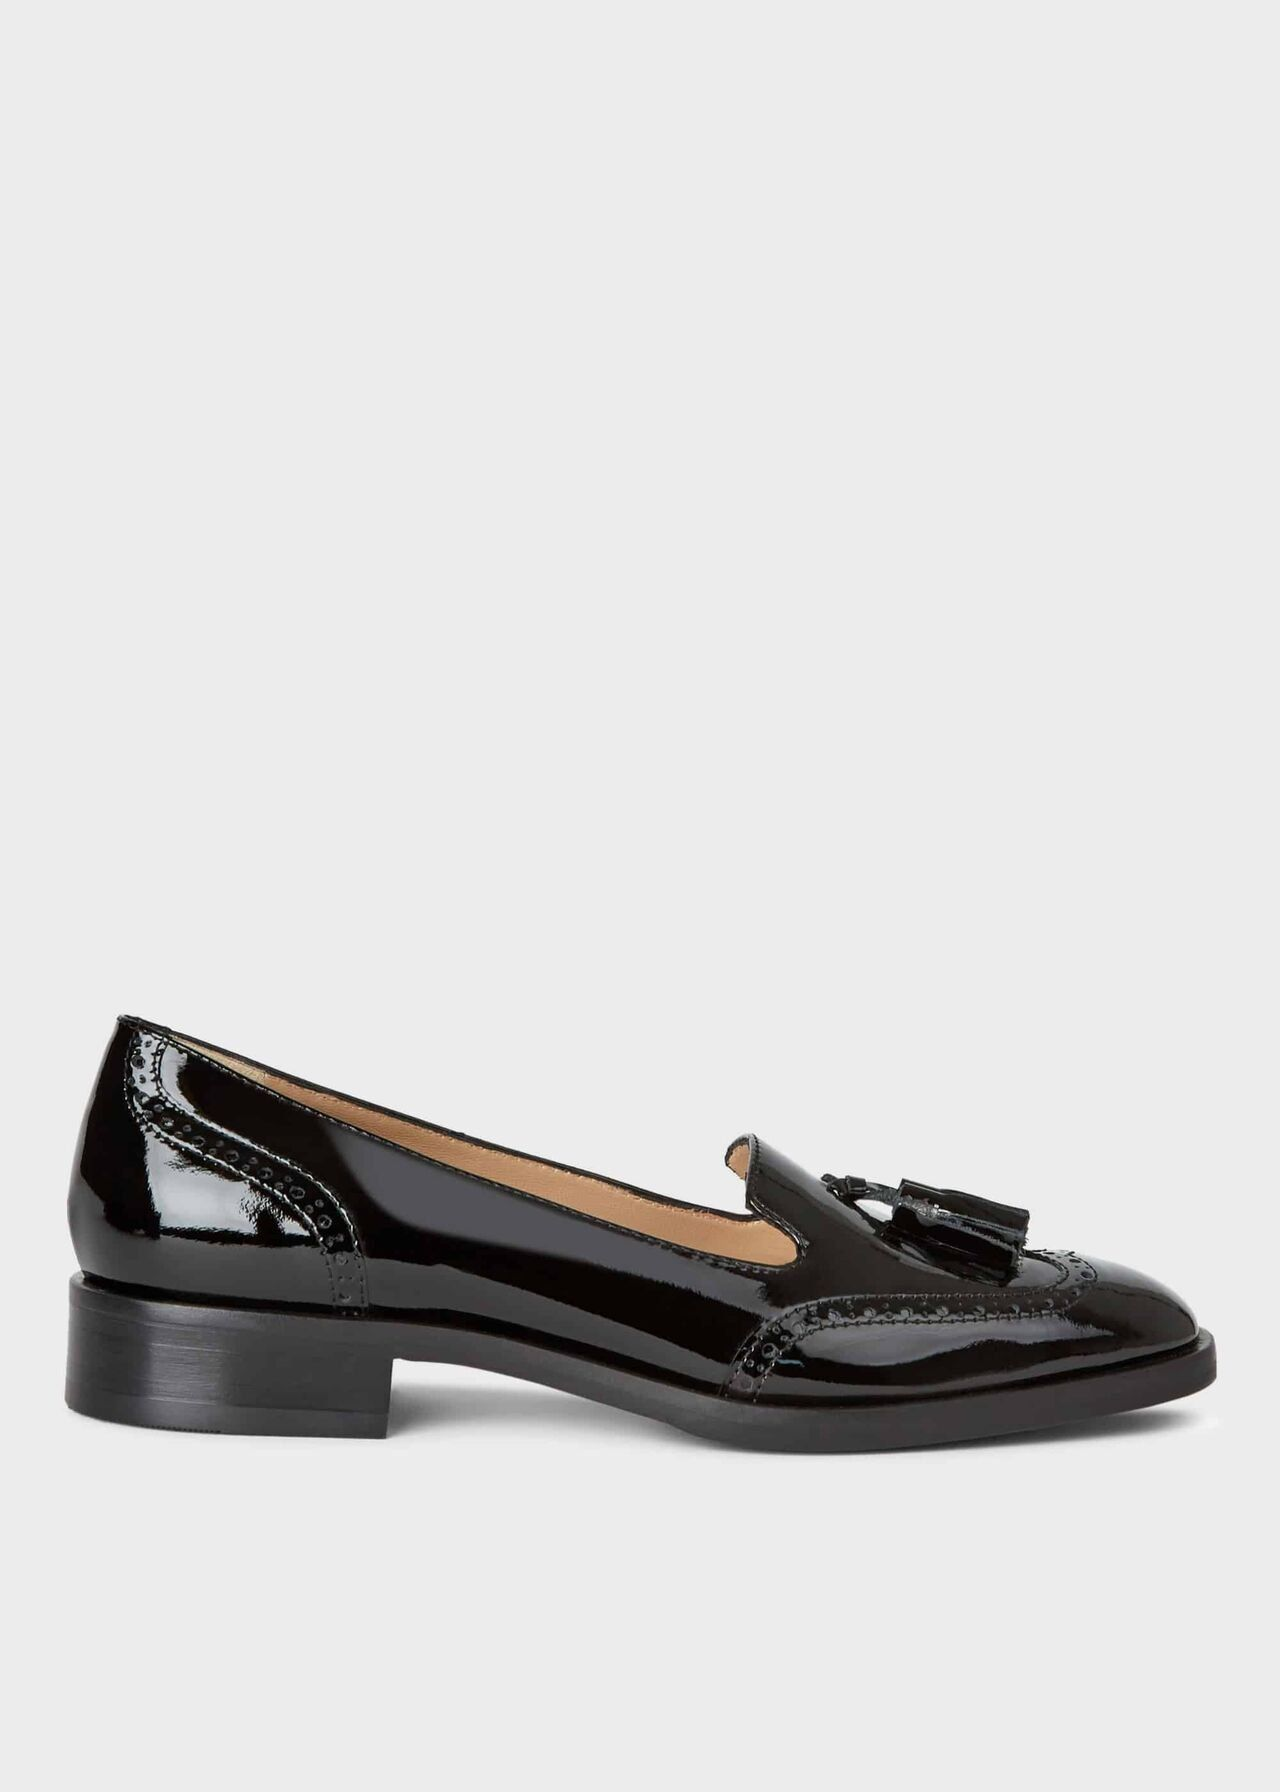 Best ladies' loafers - Loafers to buy now